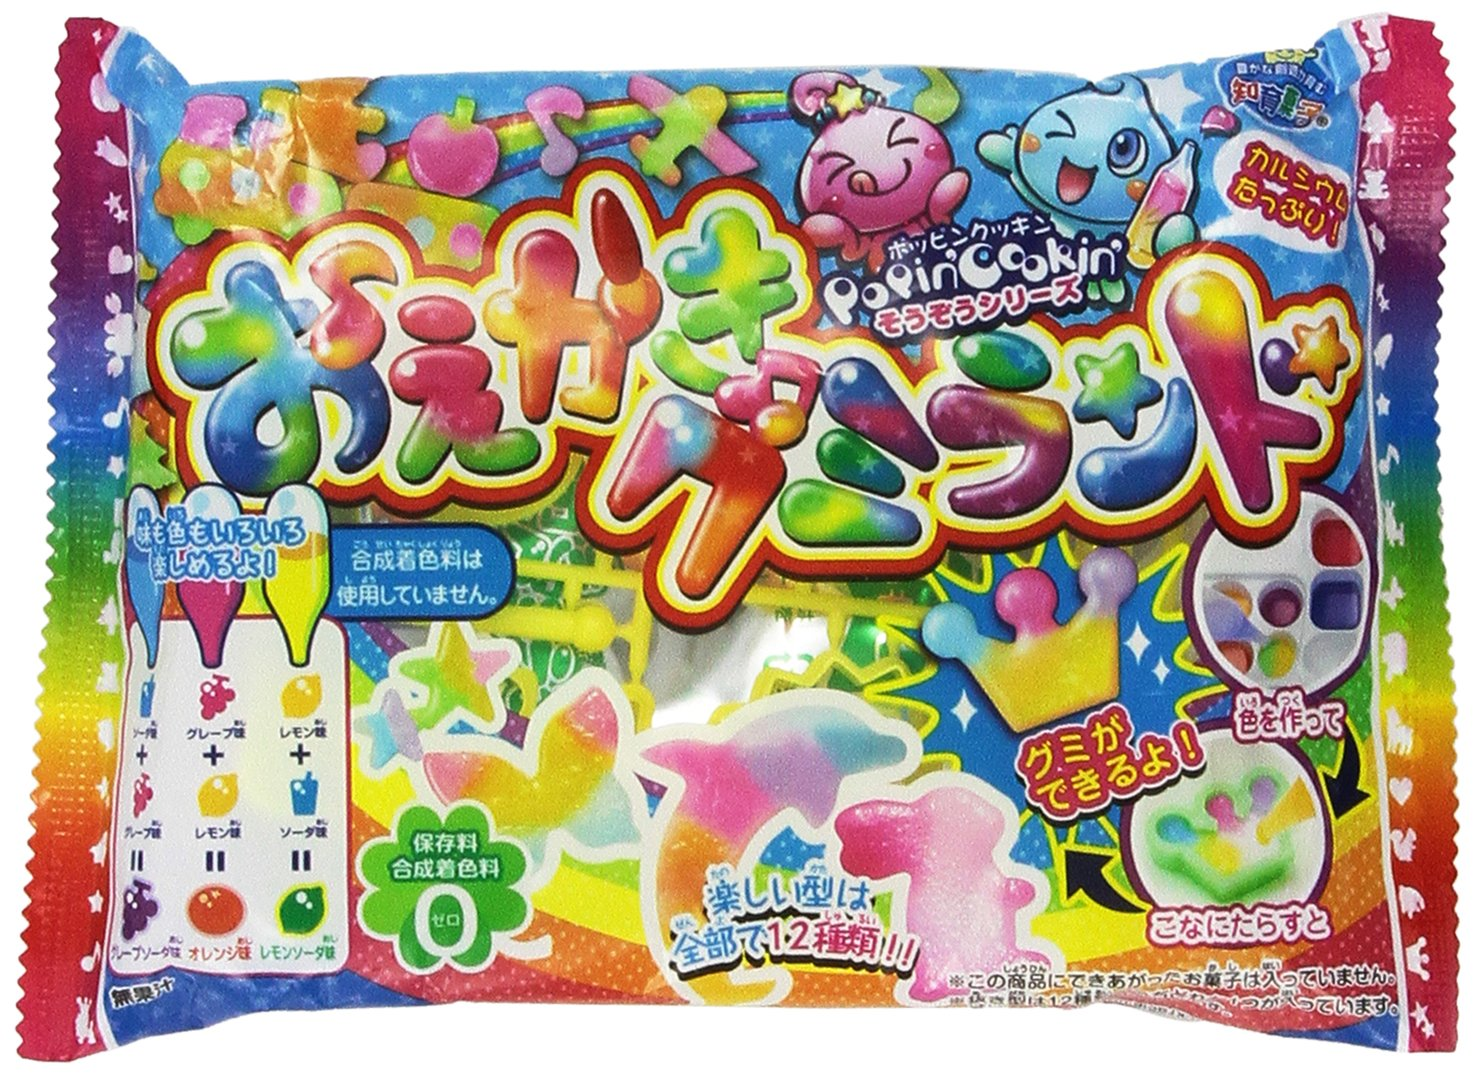 Popin cookin amazon - Amazon Com Kracie Popin Cookin Diy Candy Kit Gummy Animals Grocery Gourmet Food